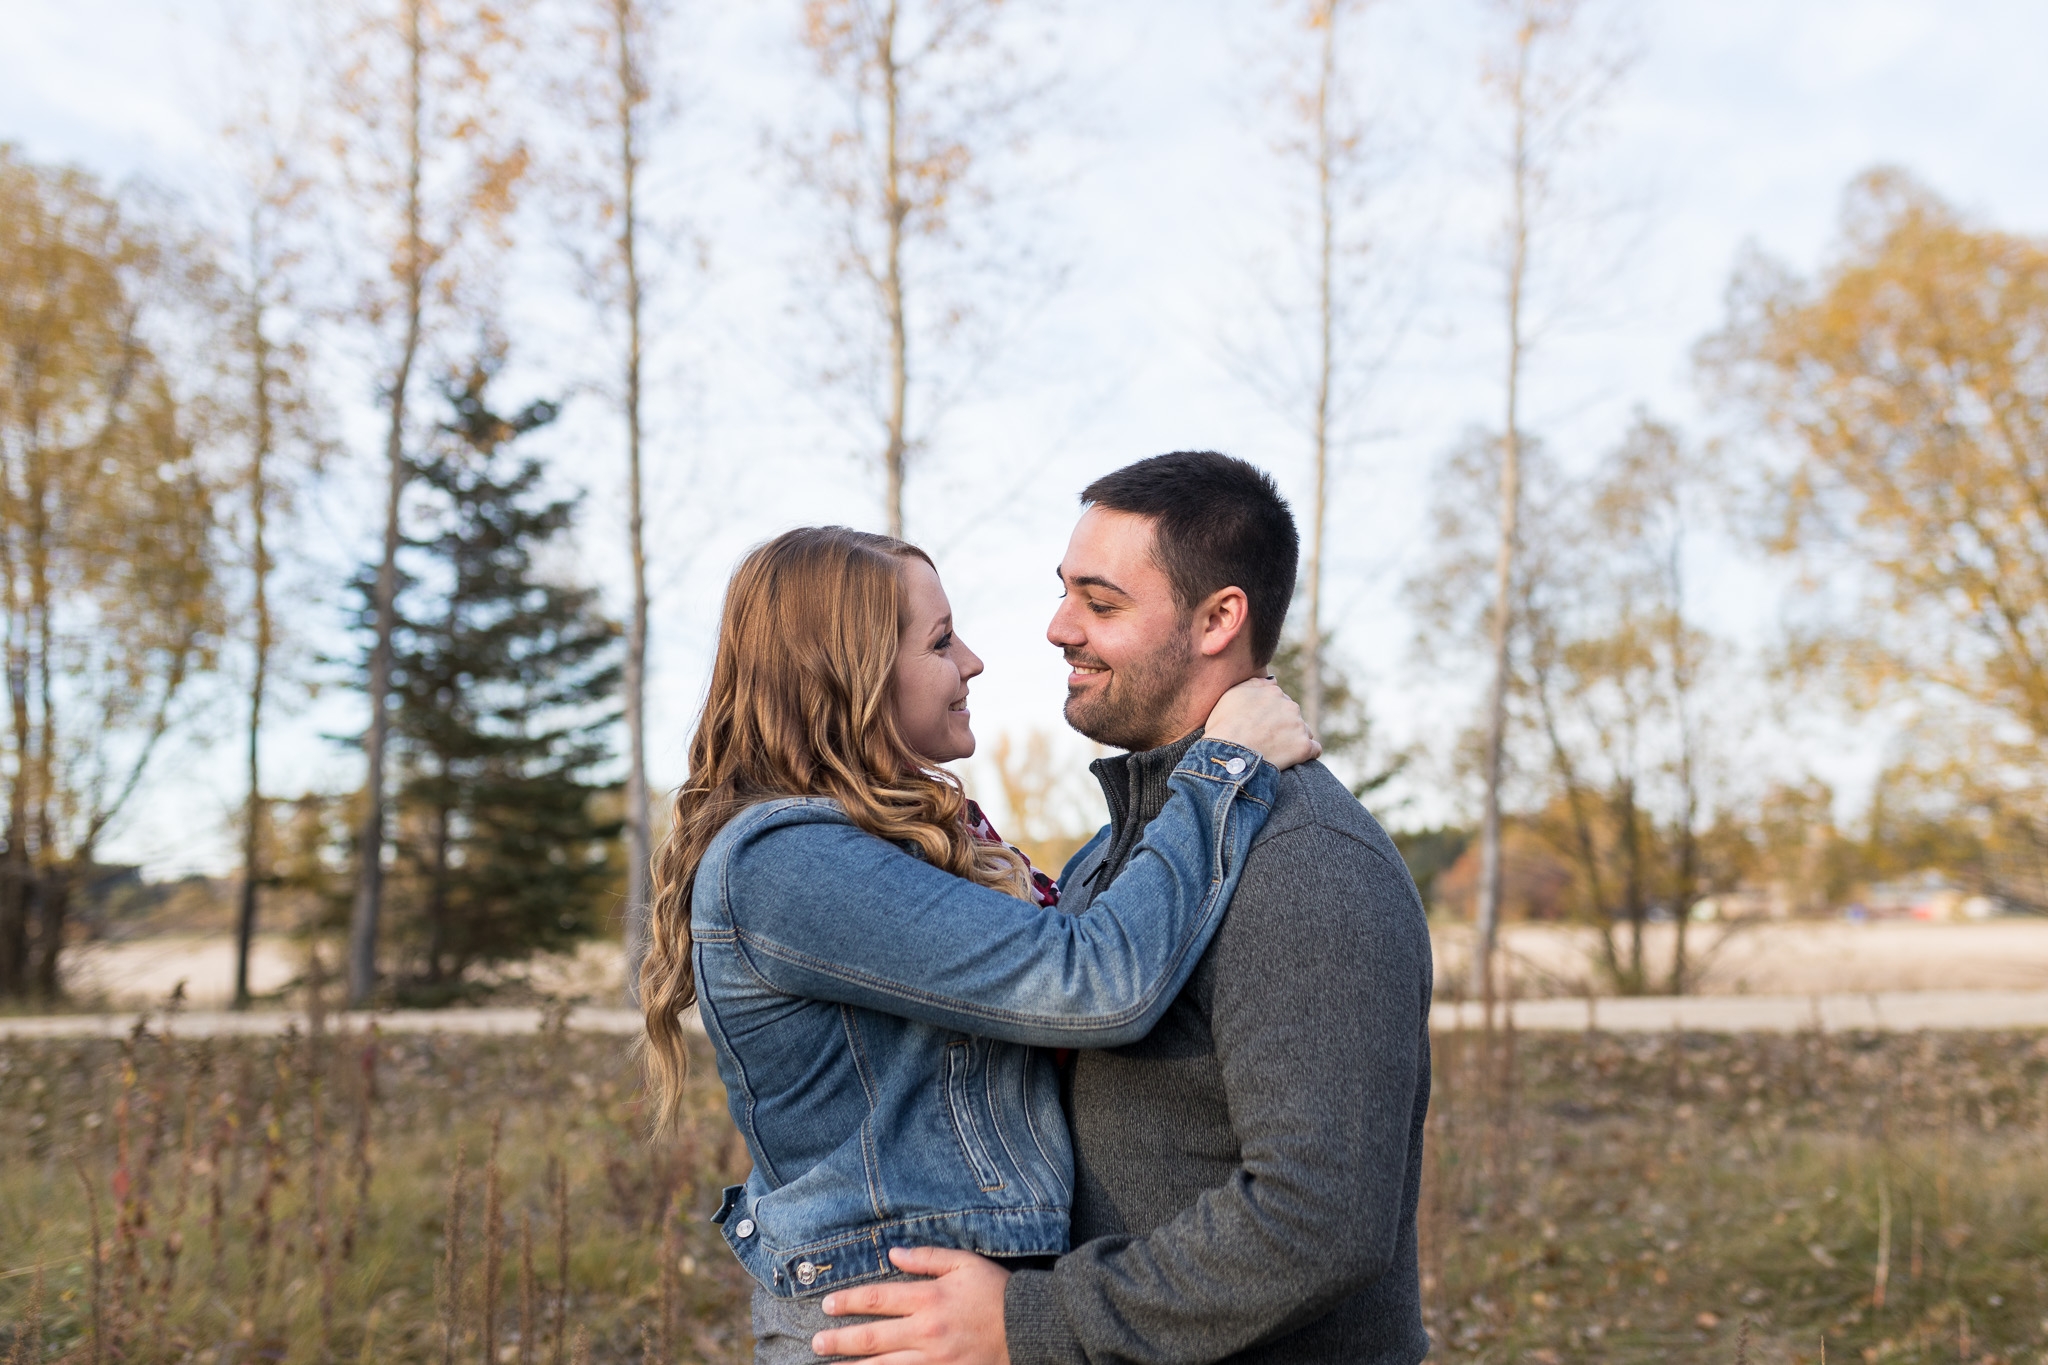 winnipeg-engagement-birdshill-park-9.jpg